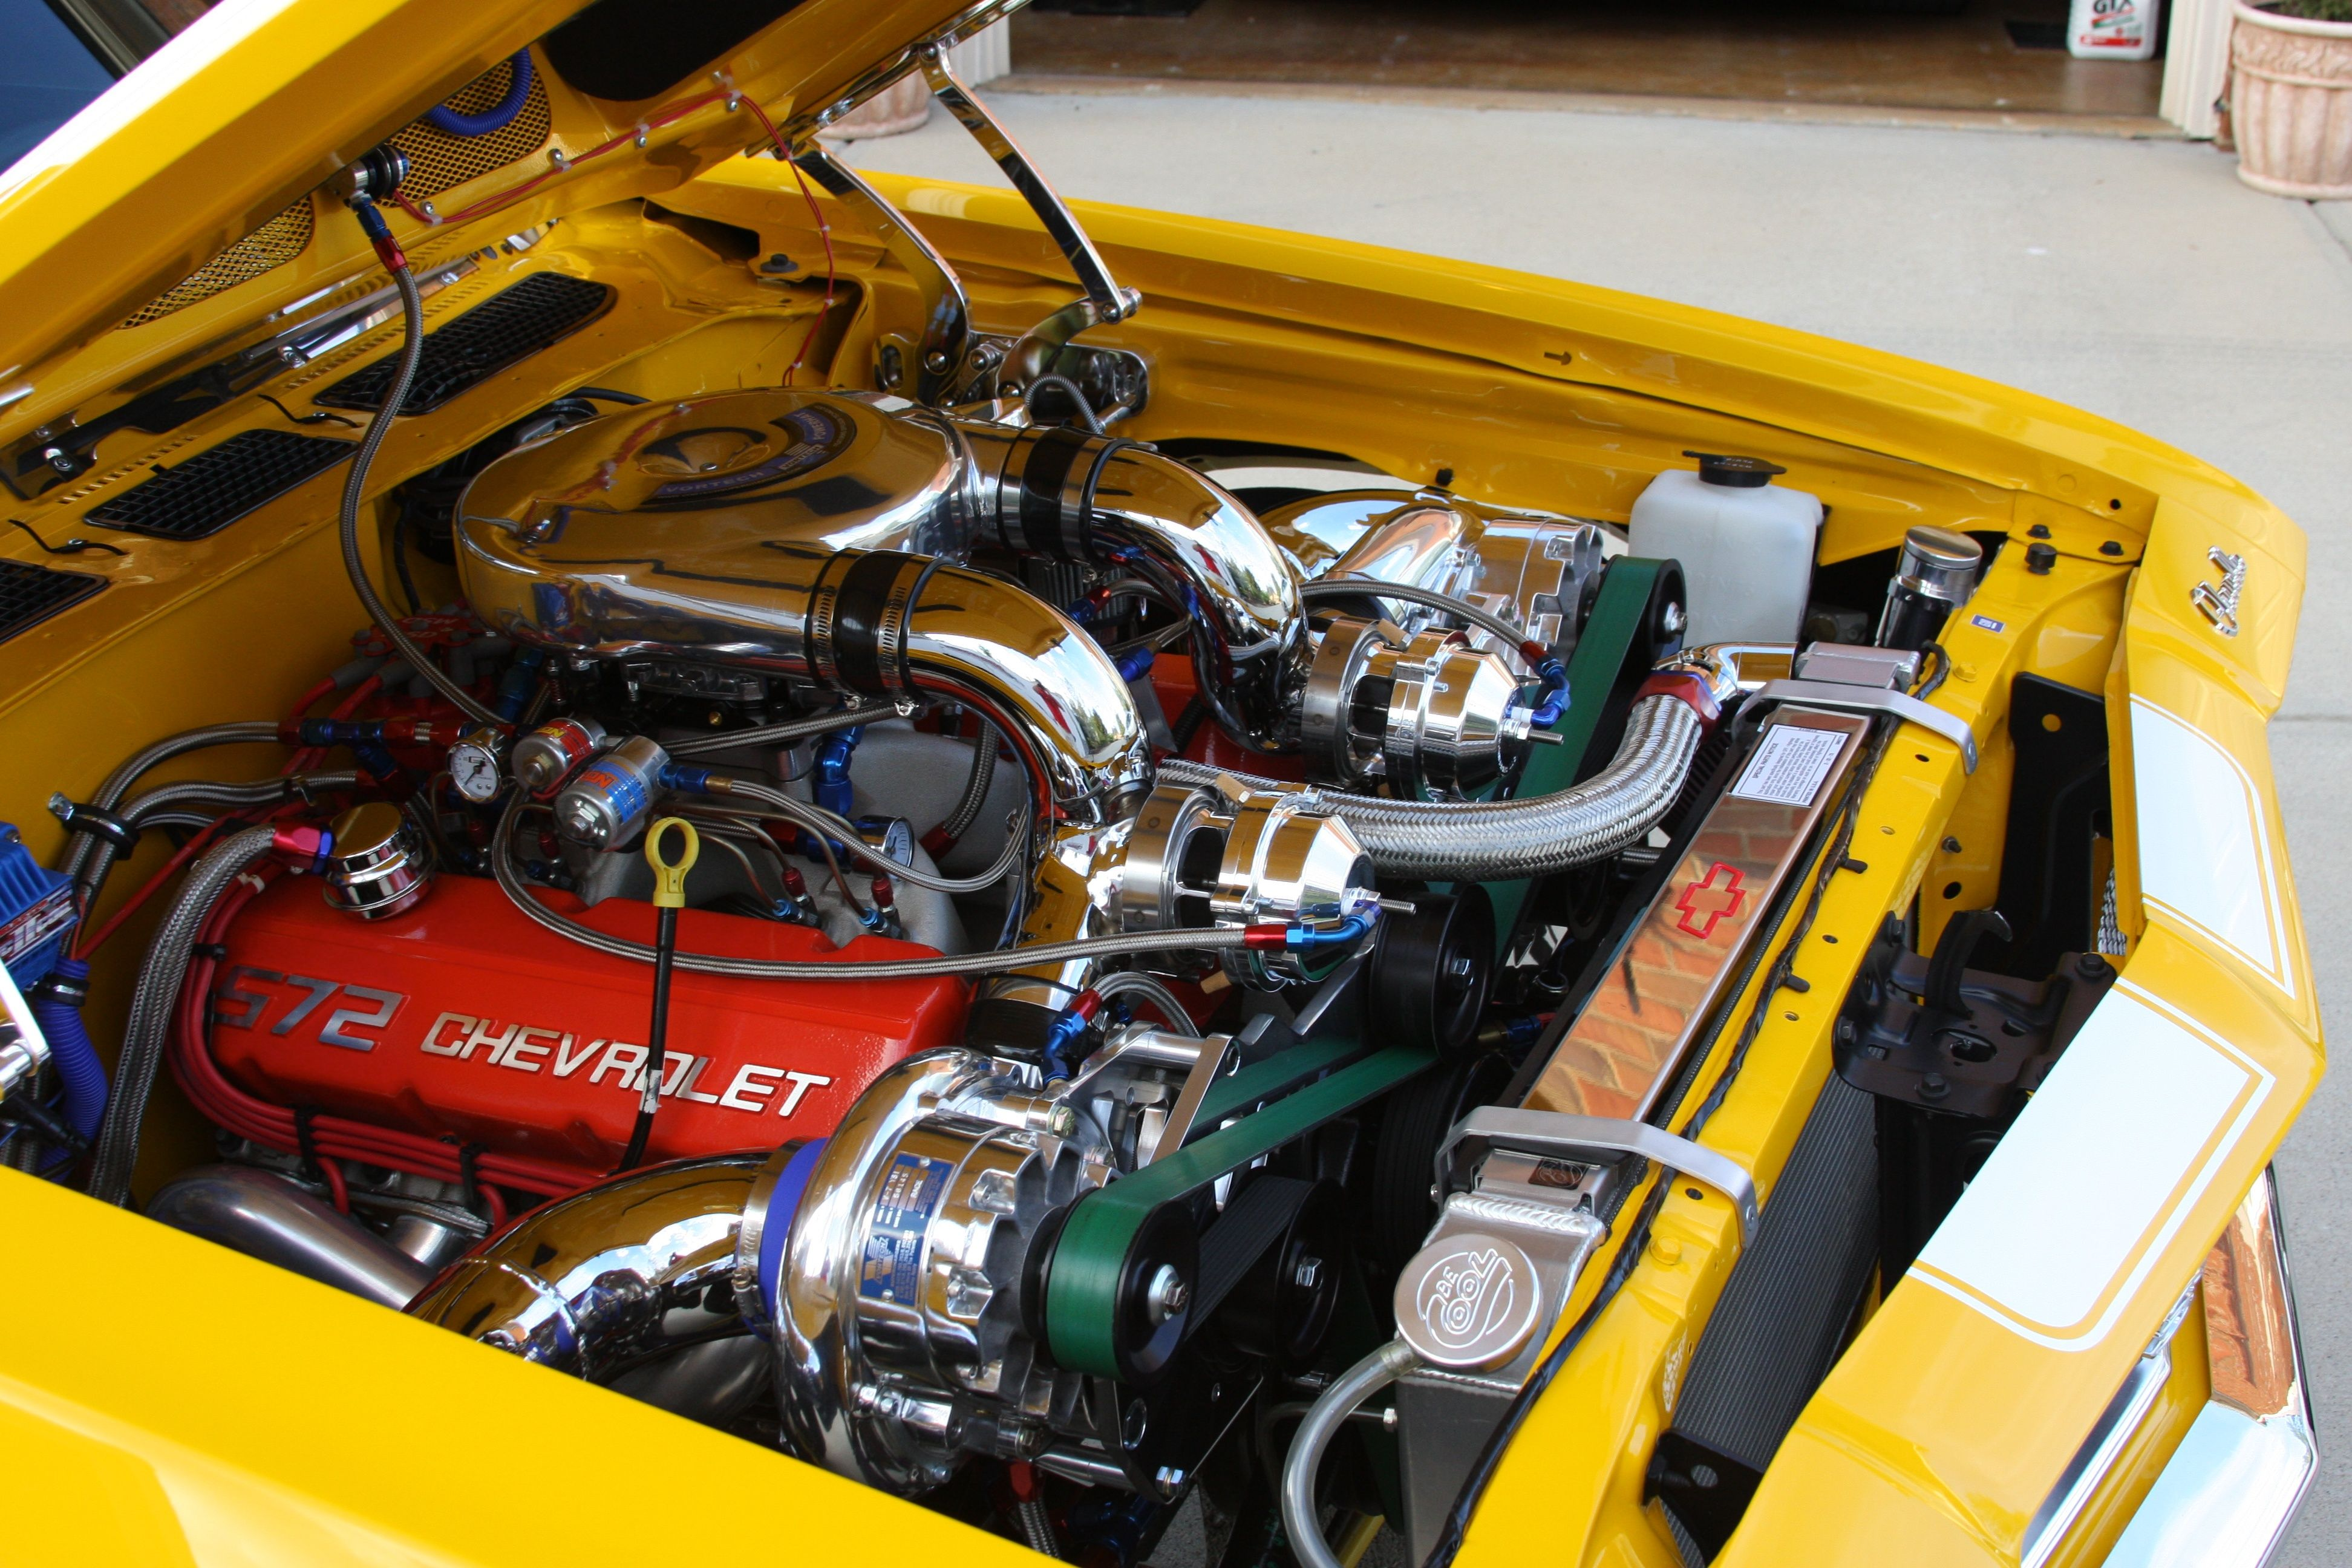 572 Chevy Big Block Twin Supercharged | Boot | Chevy, Truck